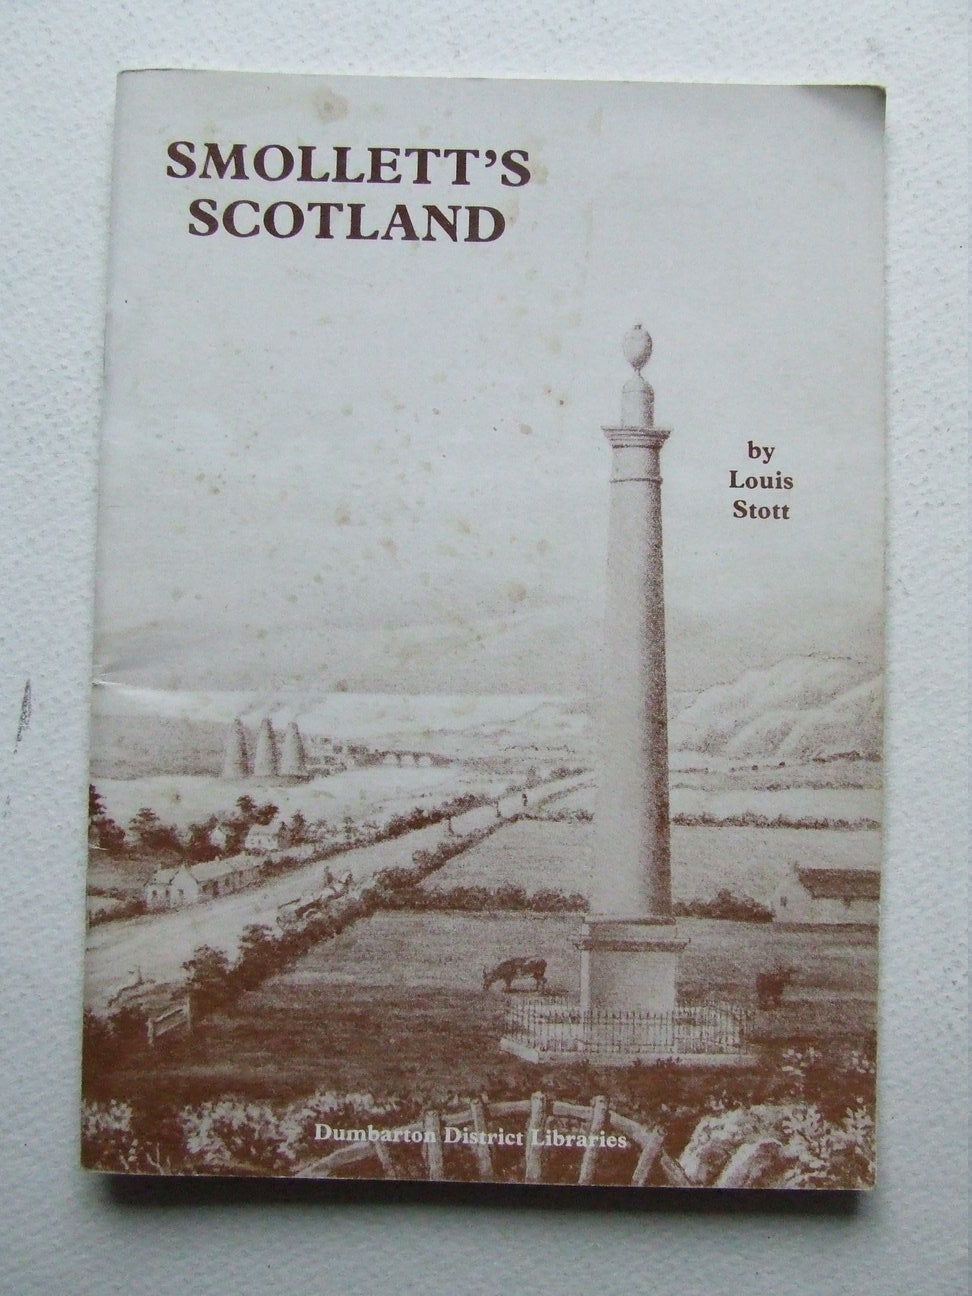 Smollett's Scotland, an illustrated guide for visitors